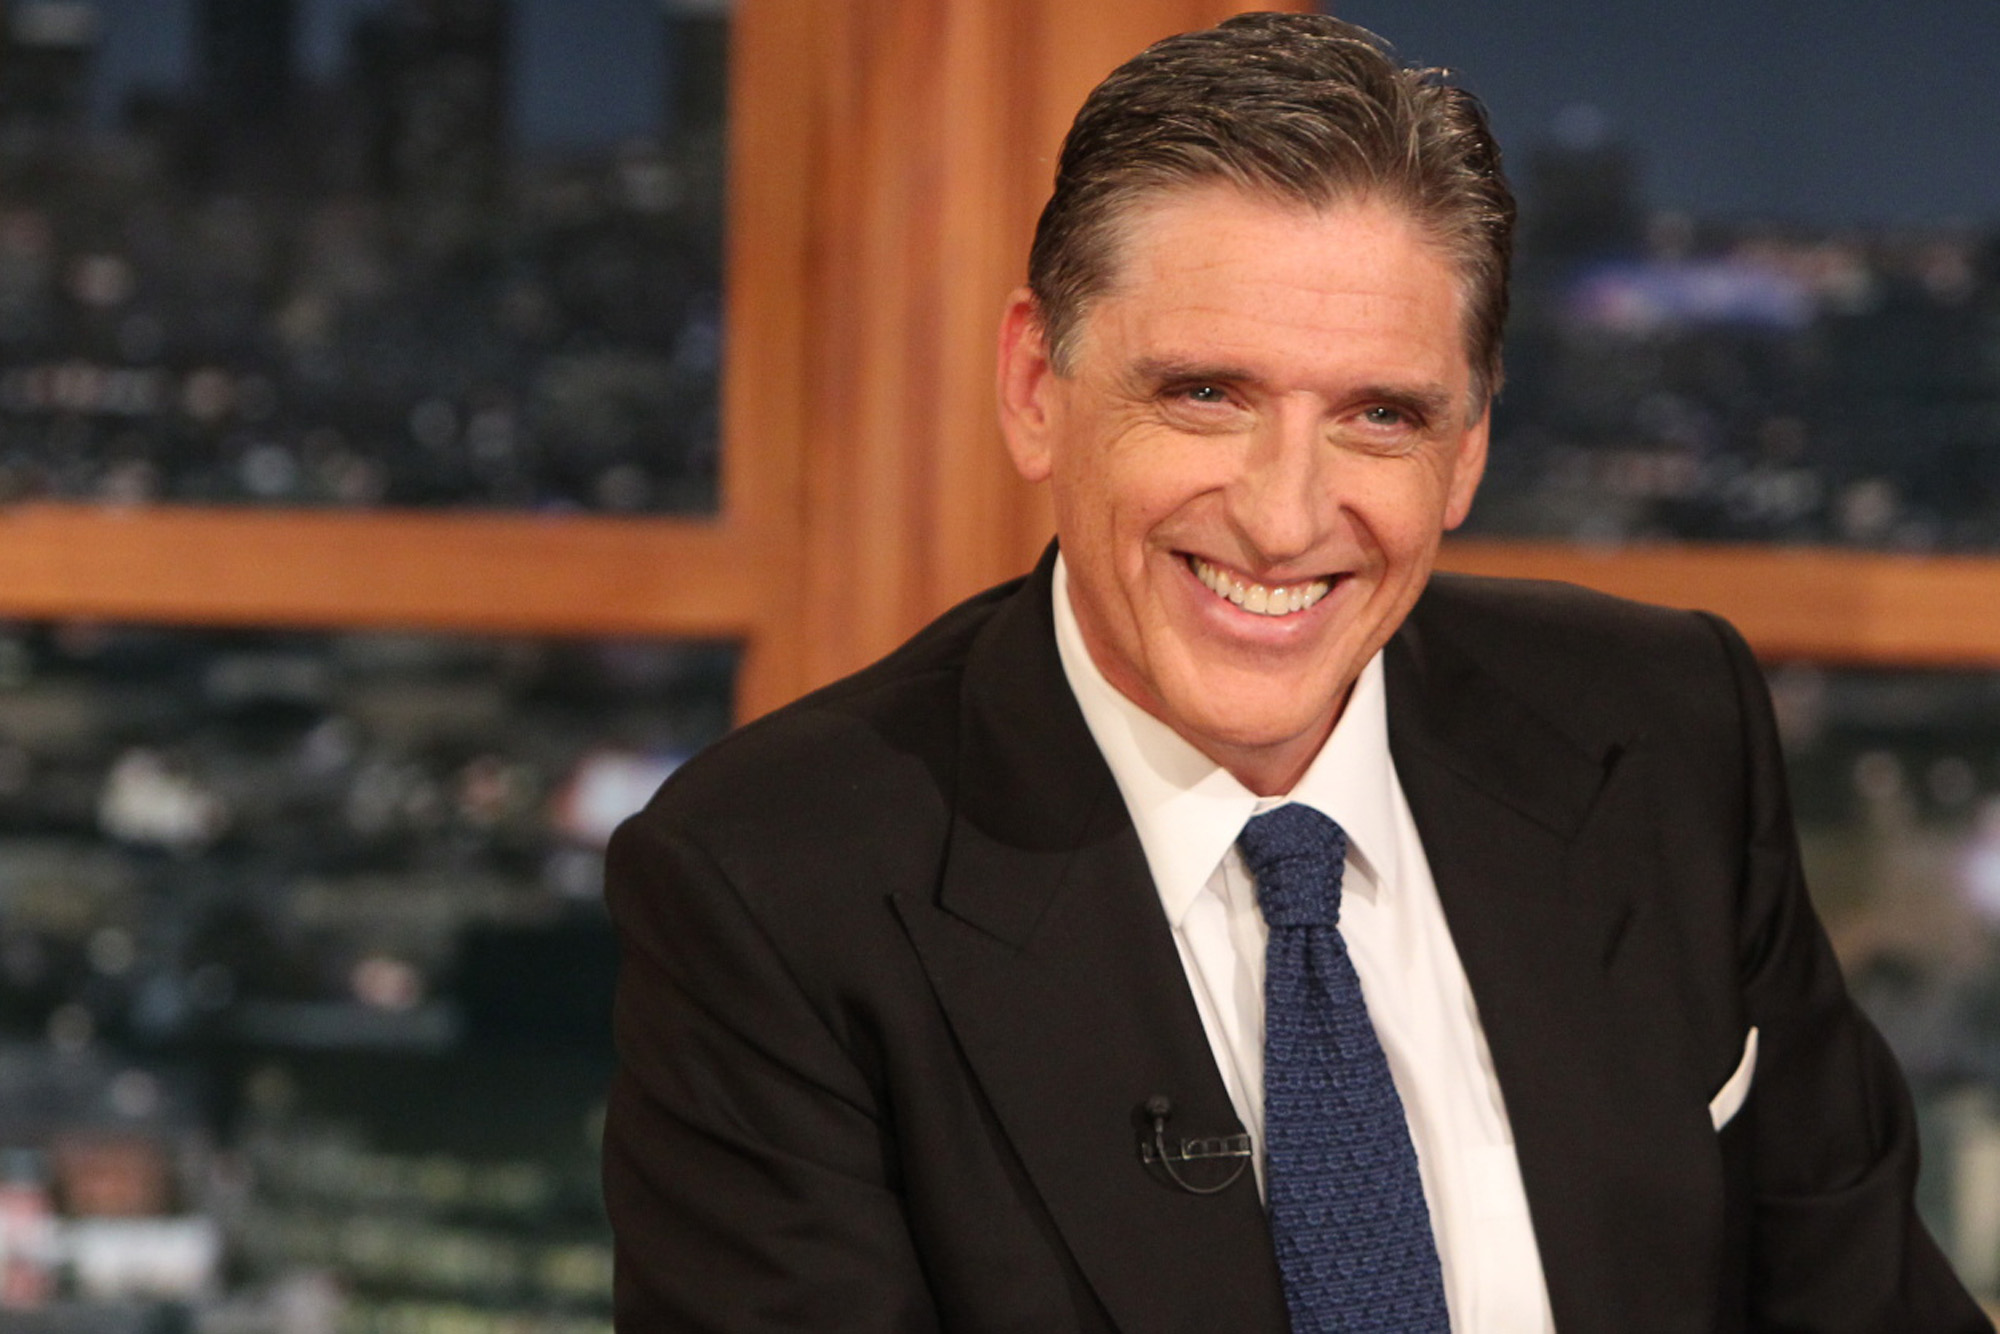 Craig Ferguson on the CBS' THE LATE LATE SHOW WITH CRAIG FERGUSON scheduled to air on July 15, 2013 the CBS Television Network.  Photo: Sonja Flemming/CBS �©2013 CBS Broadcasting, Inc. All Rights Reserved.